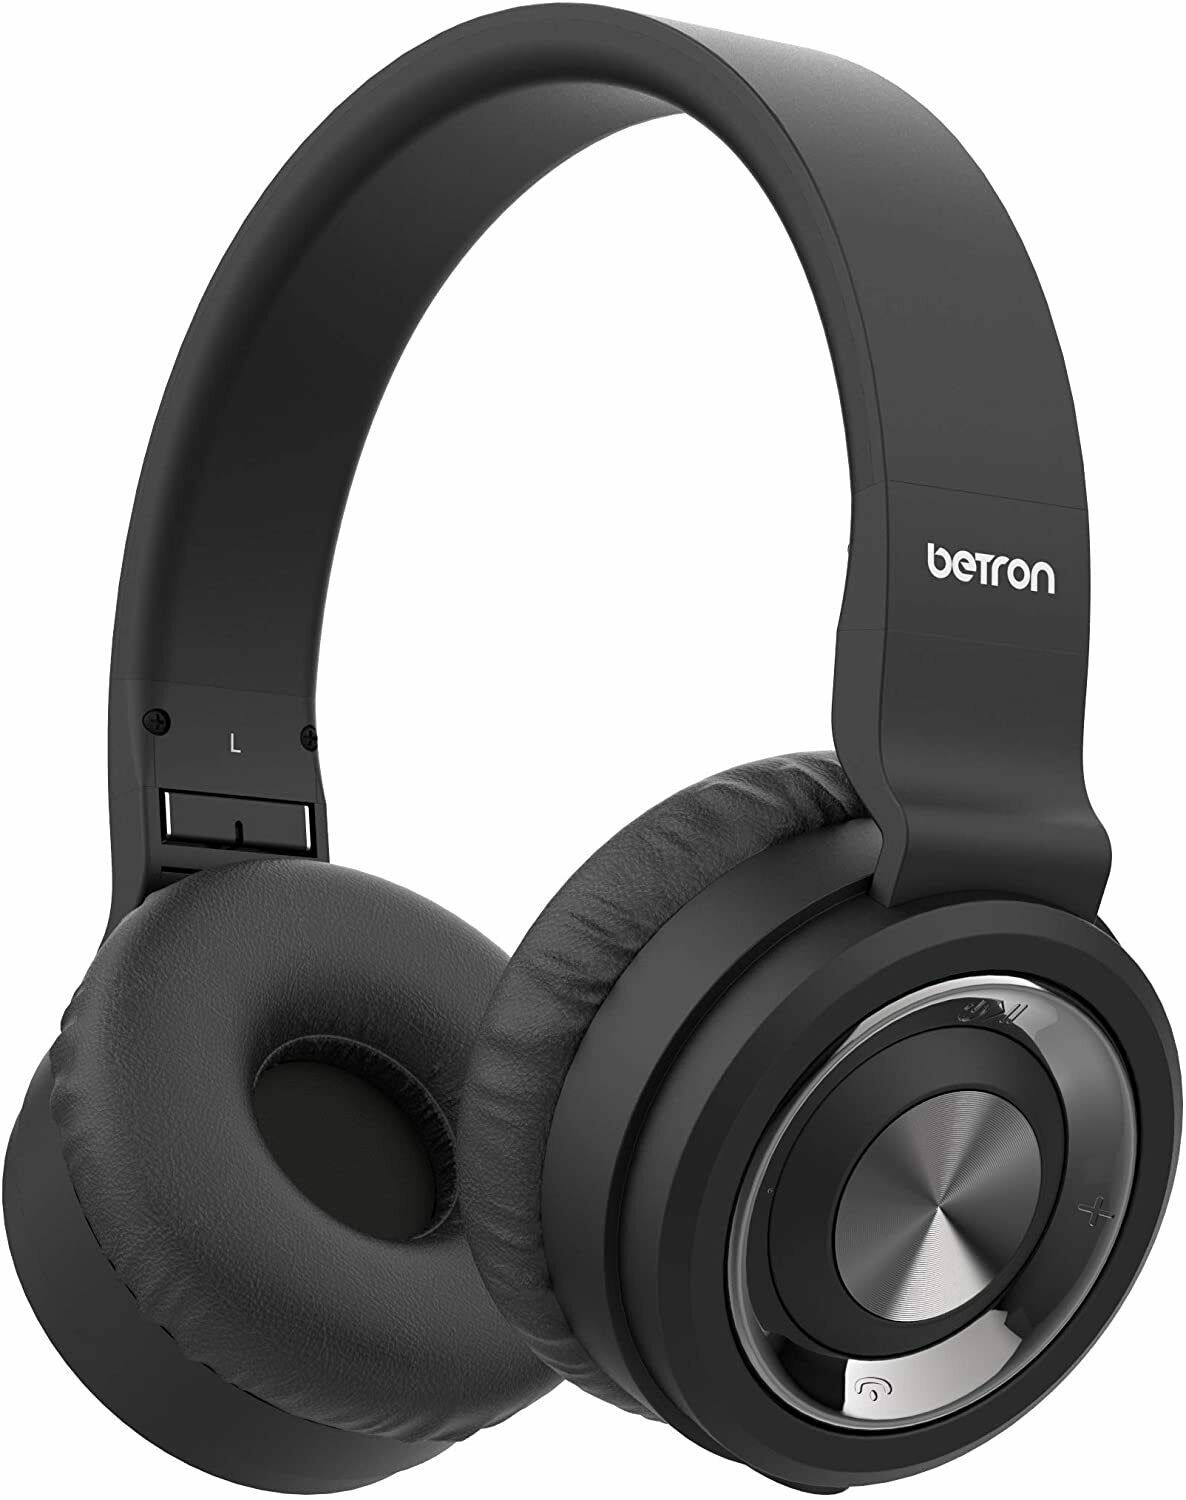 Tablets and More iPad 10m Range Wireless Betron BN15 Bluetooth Headphones Mp3 players iPod Built in Microphone for iPhone